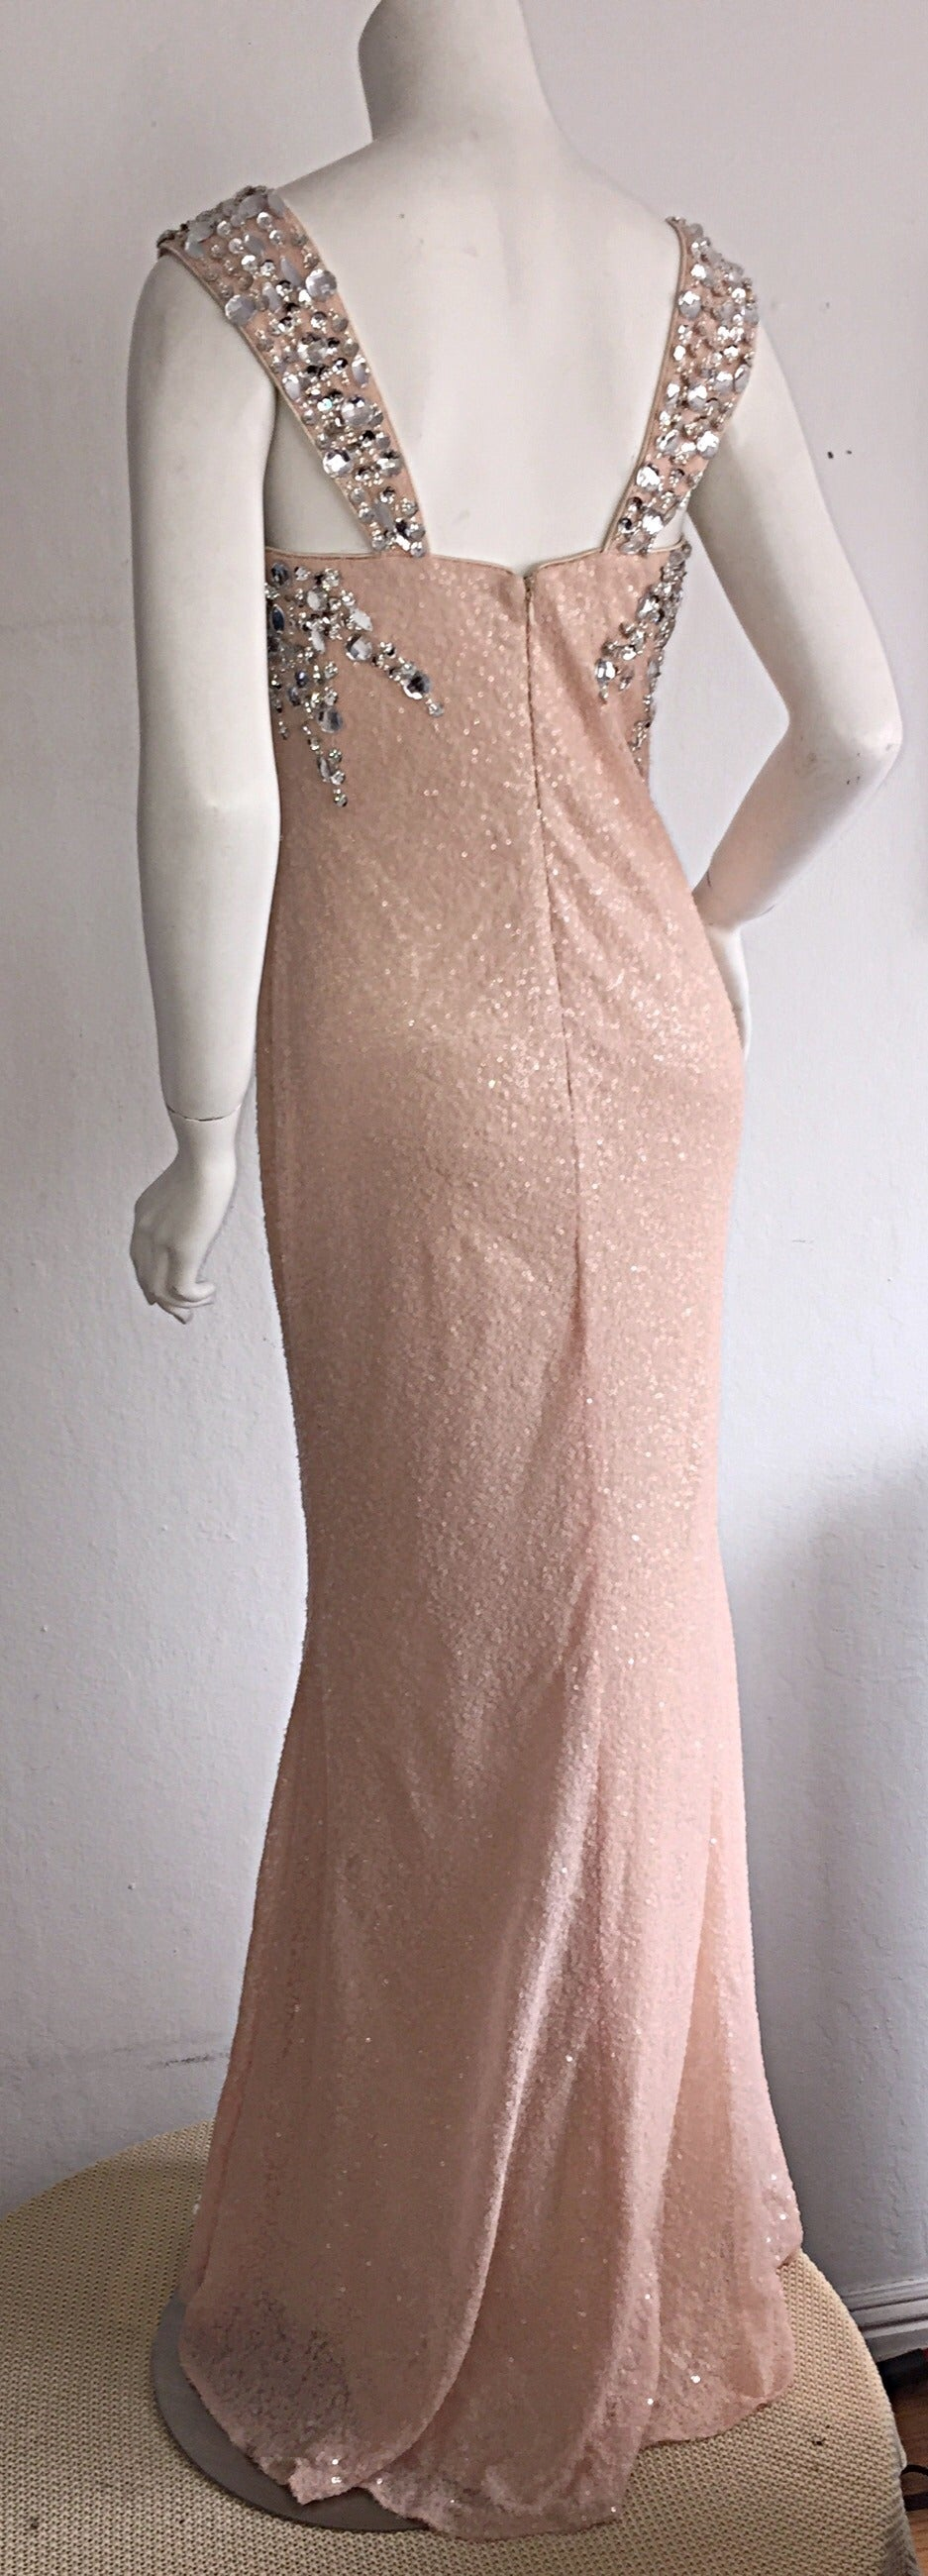 Stunning Early 1990s Custom All Over Sequin + Crystals Pink Vintage Mermaid Gown 5